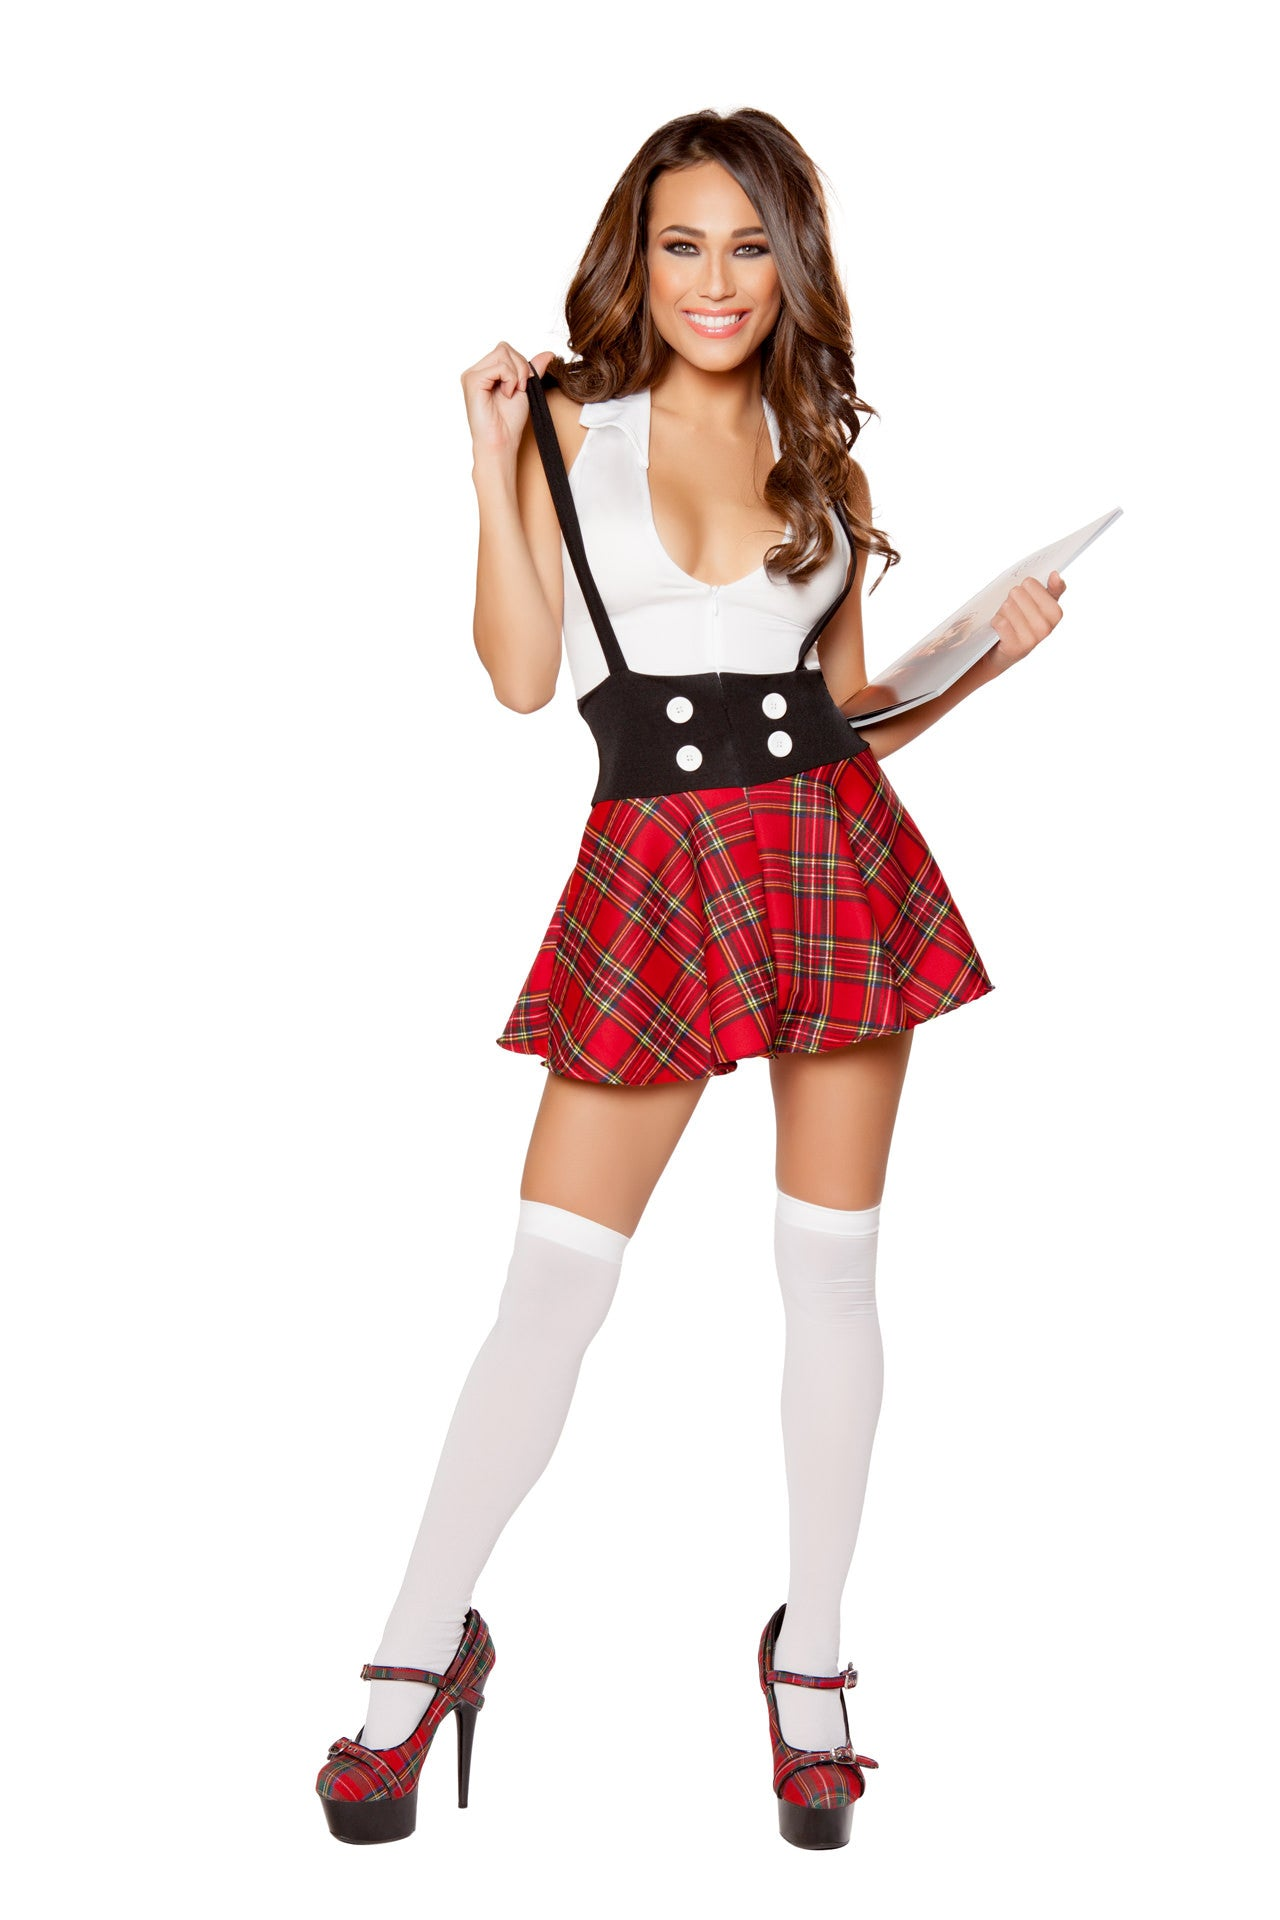 10097 - 1pc Teasing School Girl